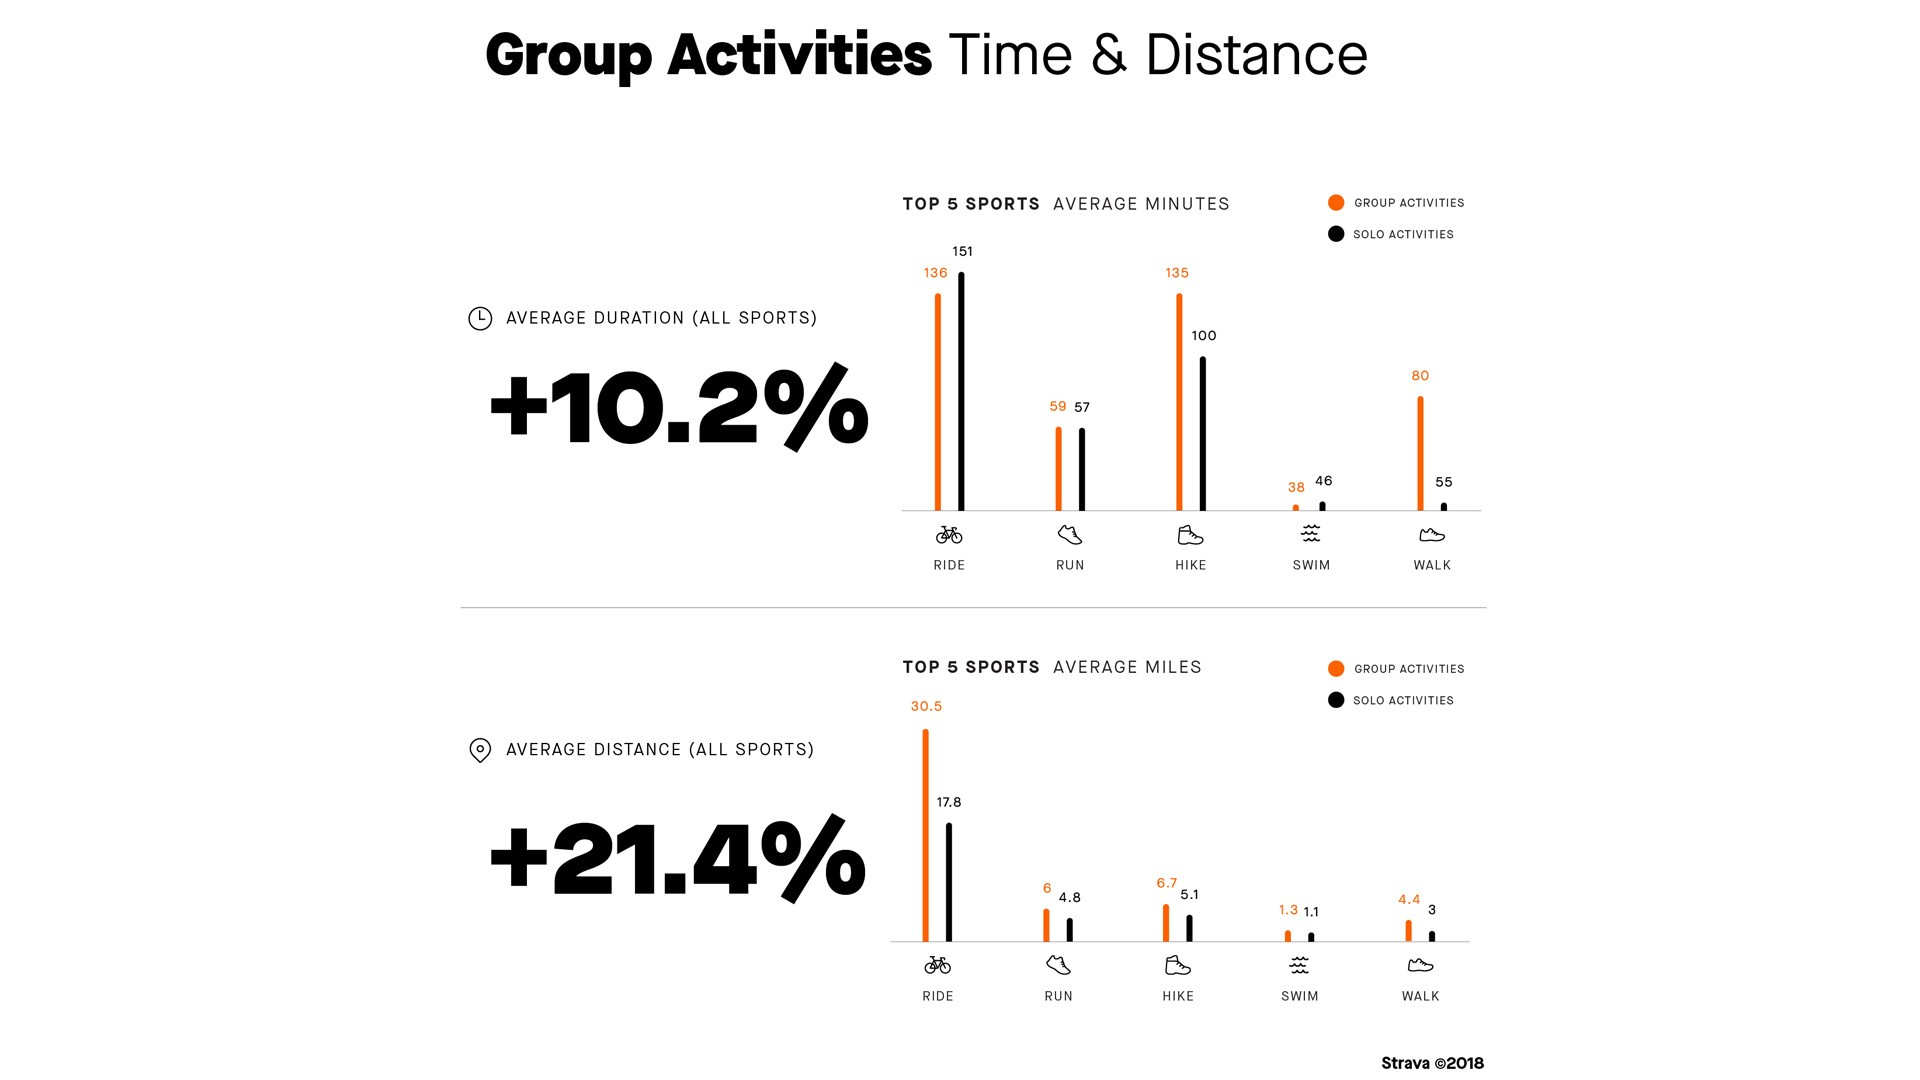 Group activities are on the increase, with virtual rides one of the biggest areas of growth